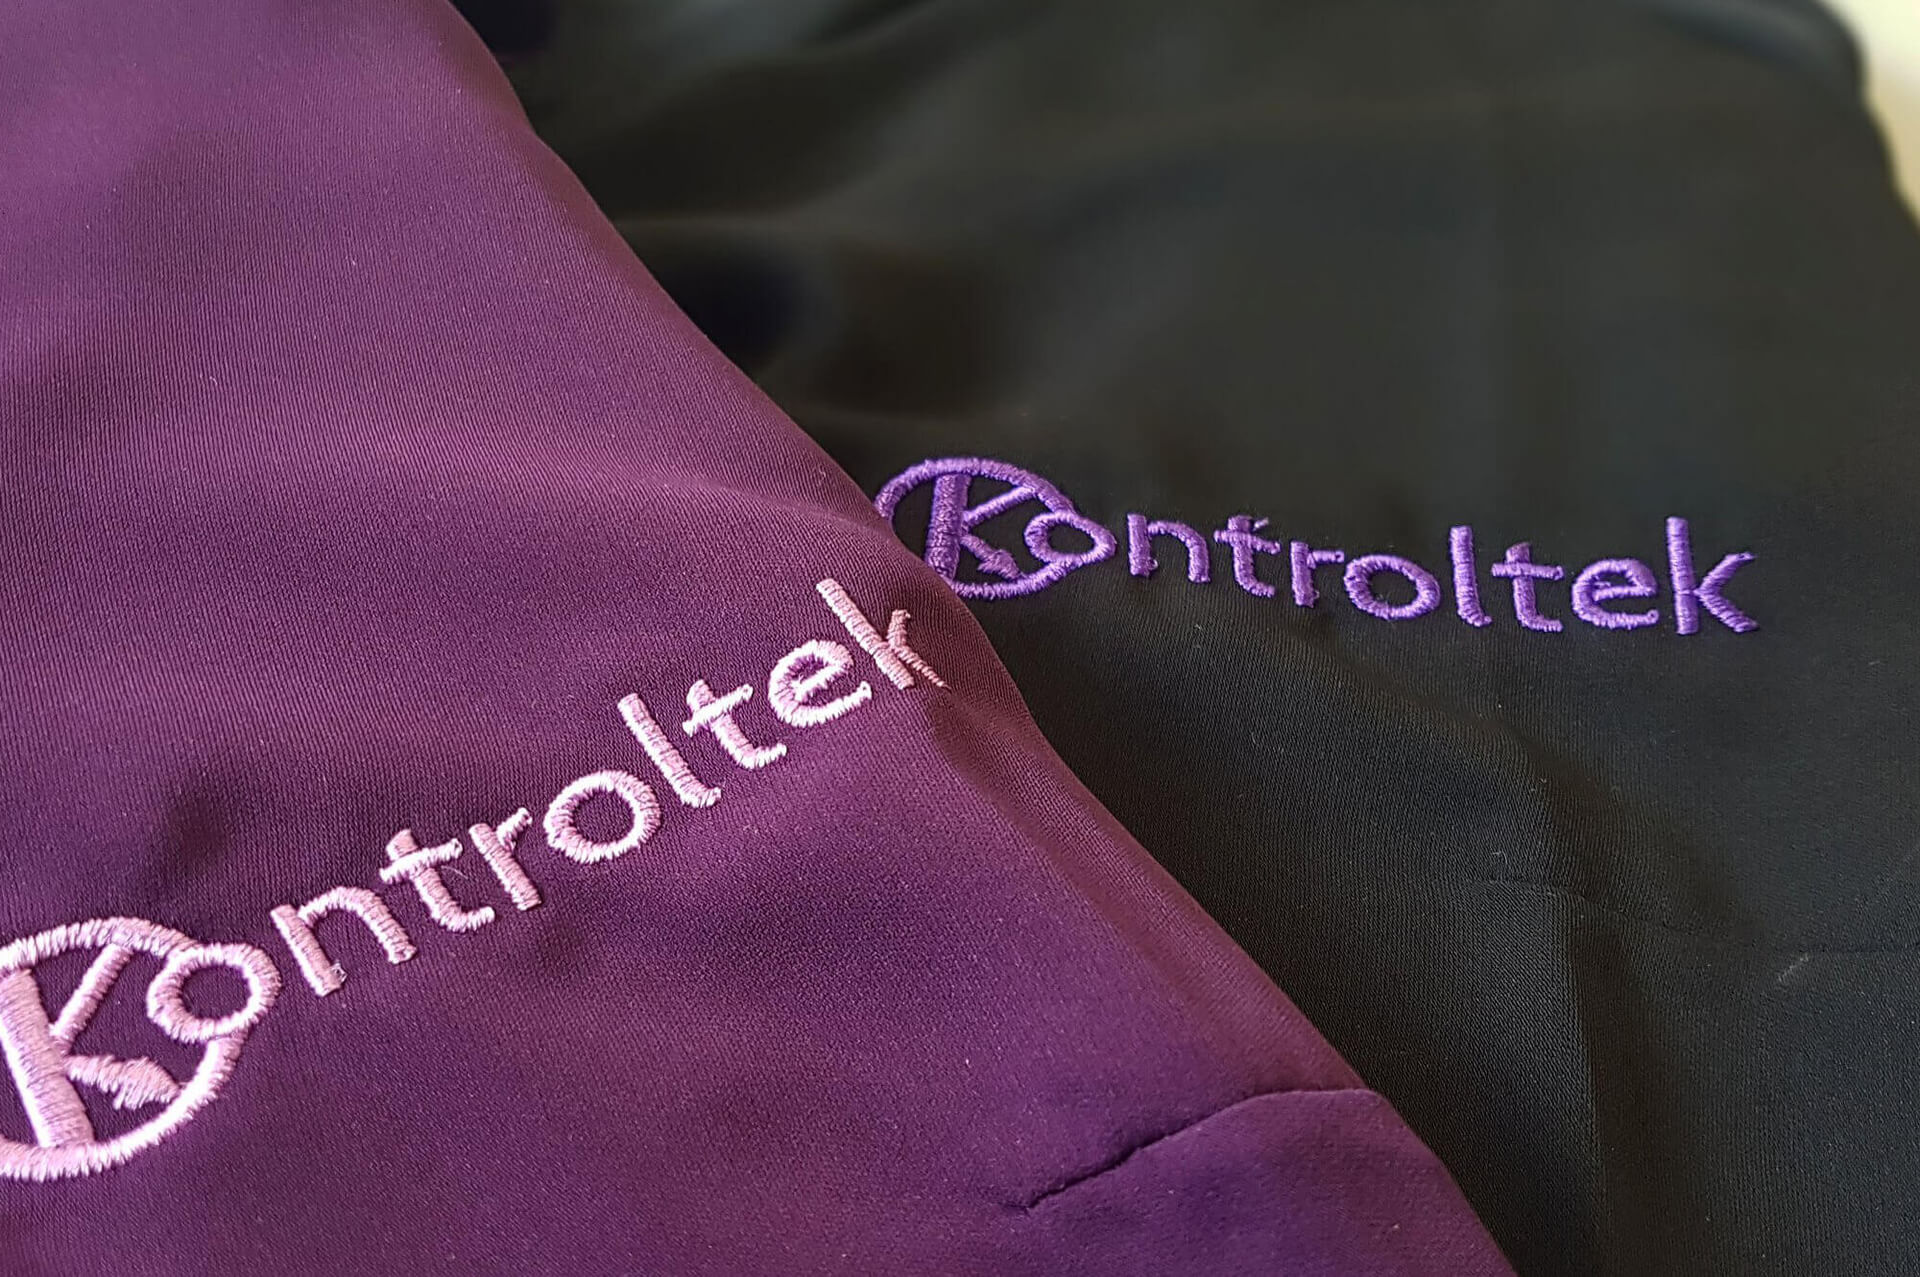 Kontroltek new uniforms with bespoke embroidery